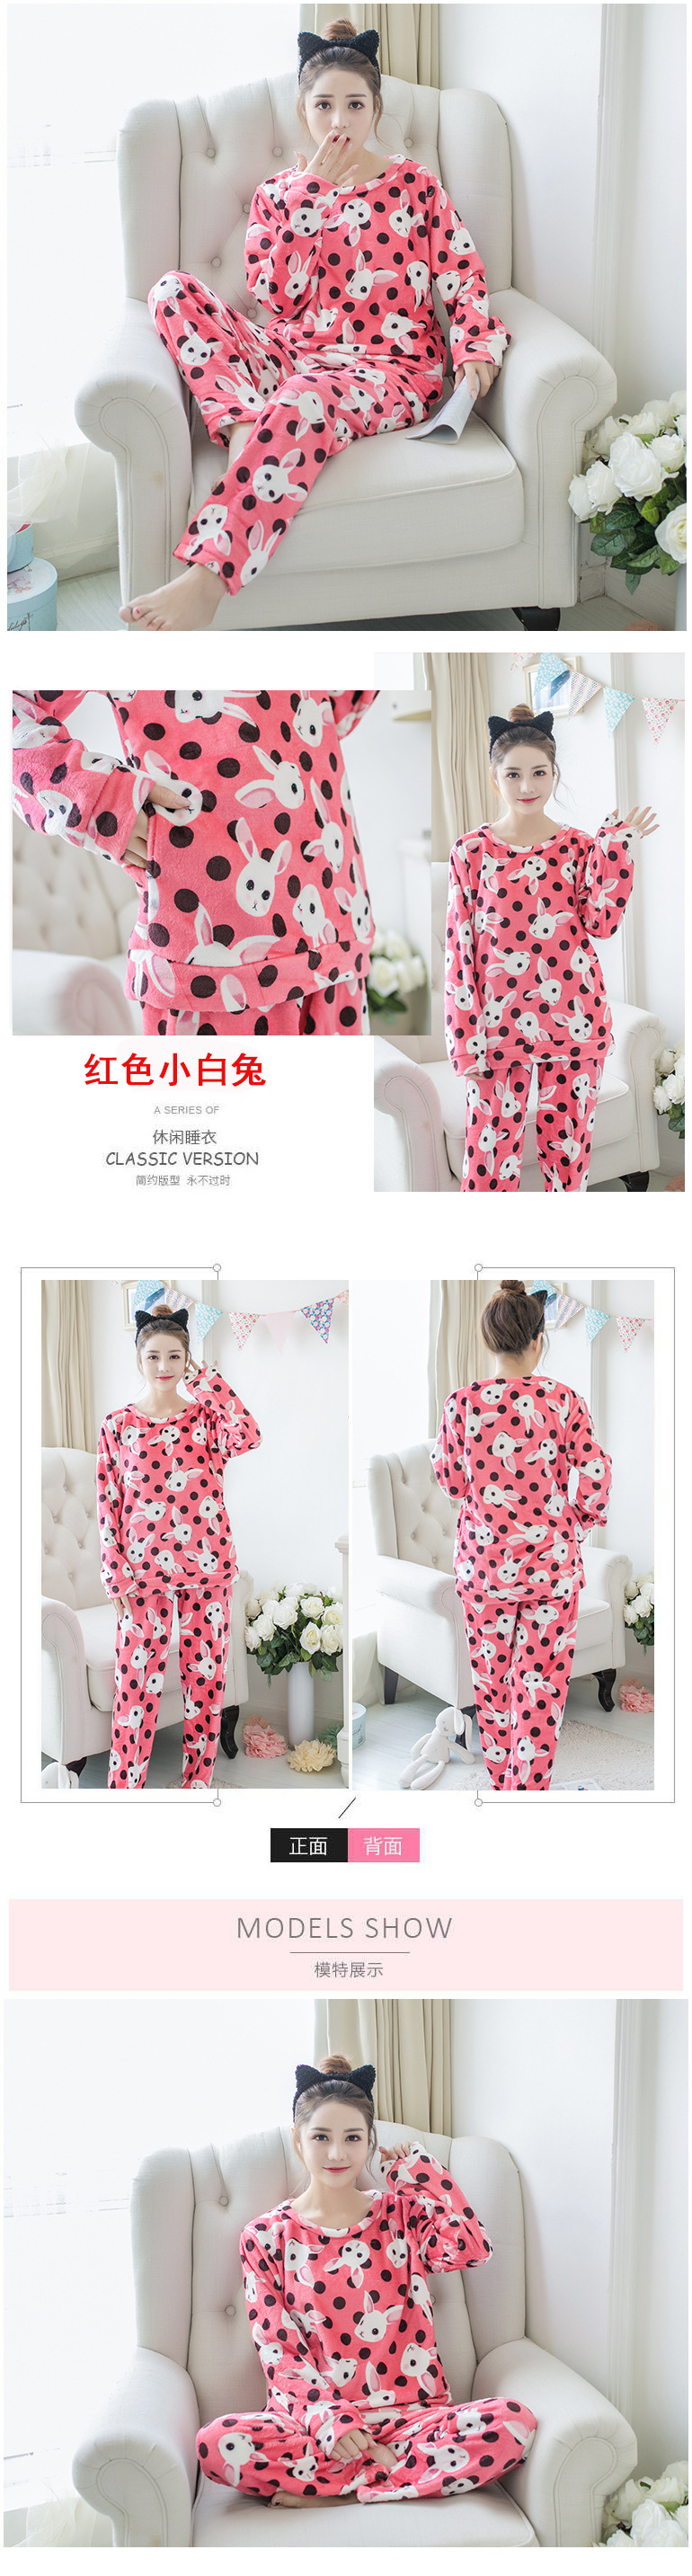 Betyline 2019 New Winter Pajamas For Women Sleepwear Warm Flannel Long Sleeves Pajamas Cute Animal Homewear Thick Homewear 161